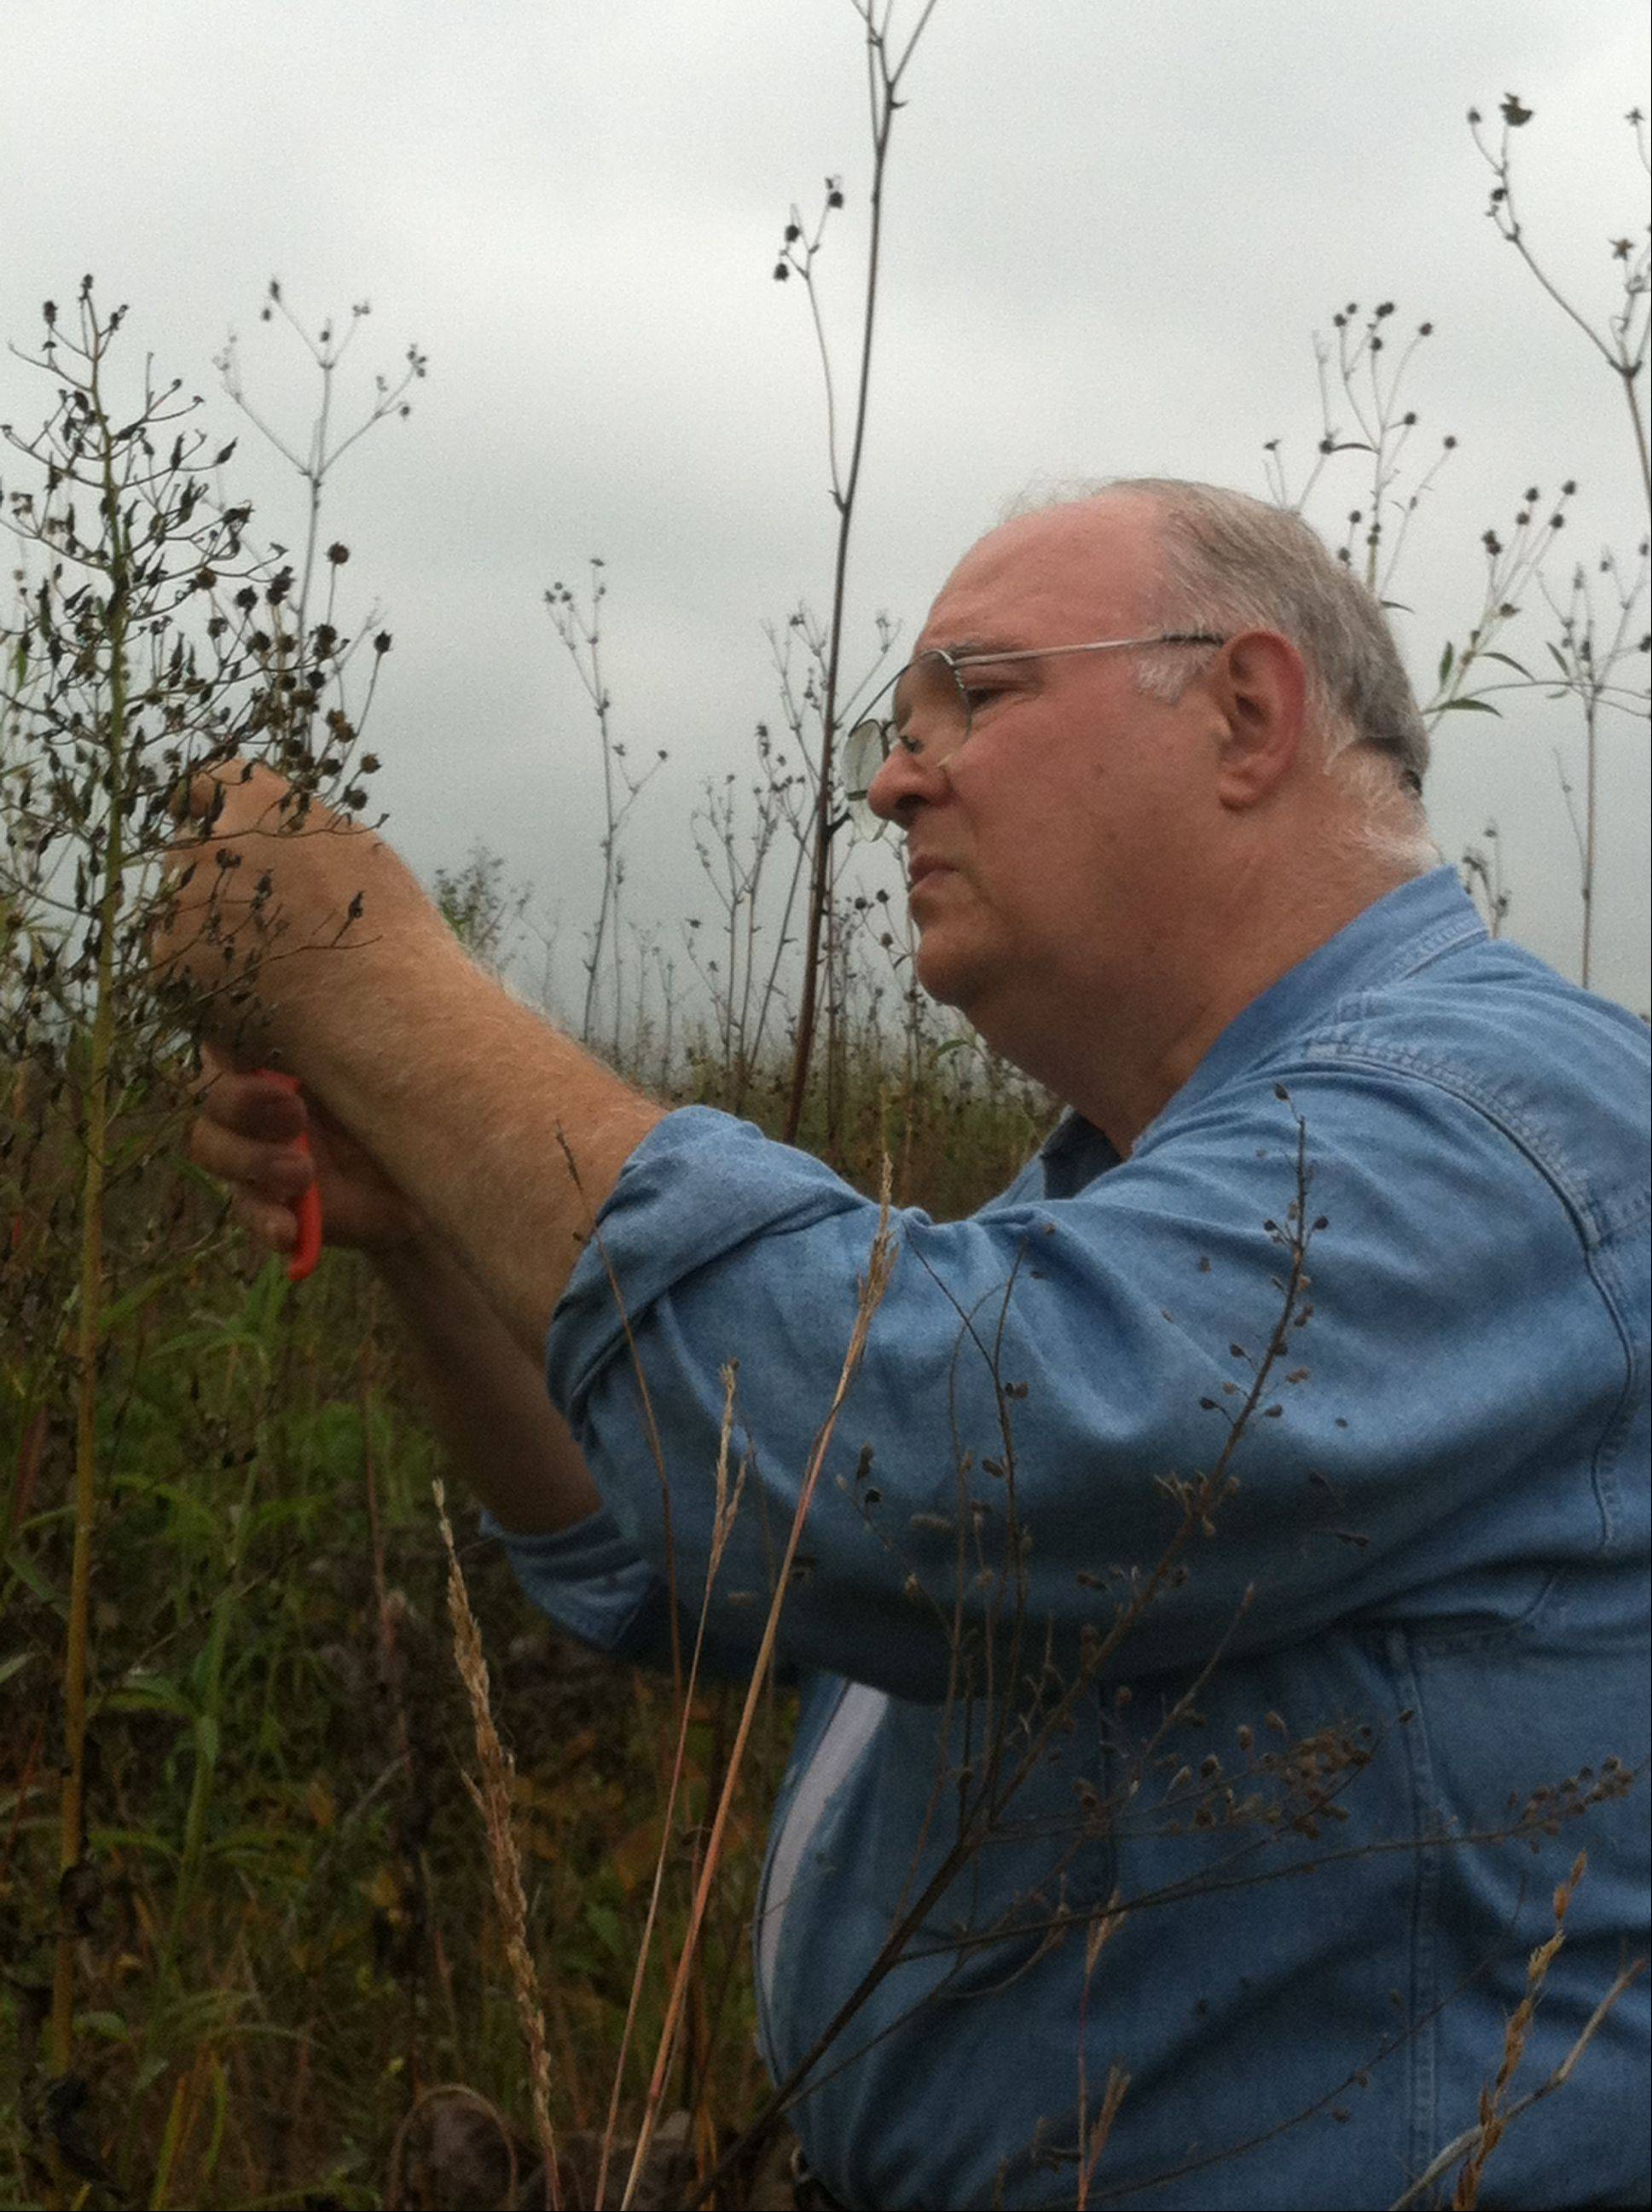 Paul Conterato, 61, of Geneva, collects tall coreopsis Saturday during Fermi Lab's seed harvest. The seeds will be used to diversify plantings throughout the property's prairies.